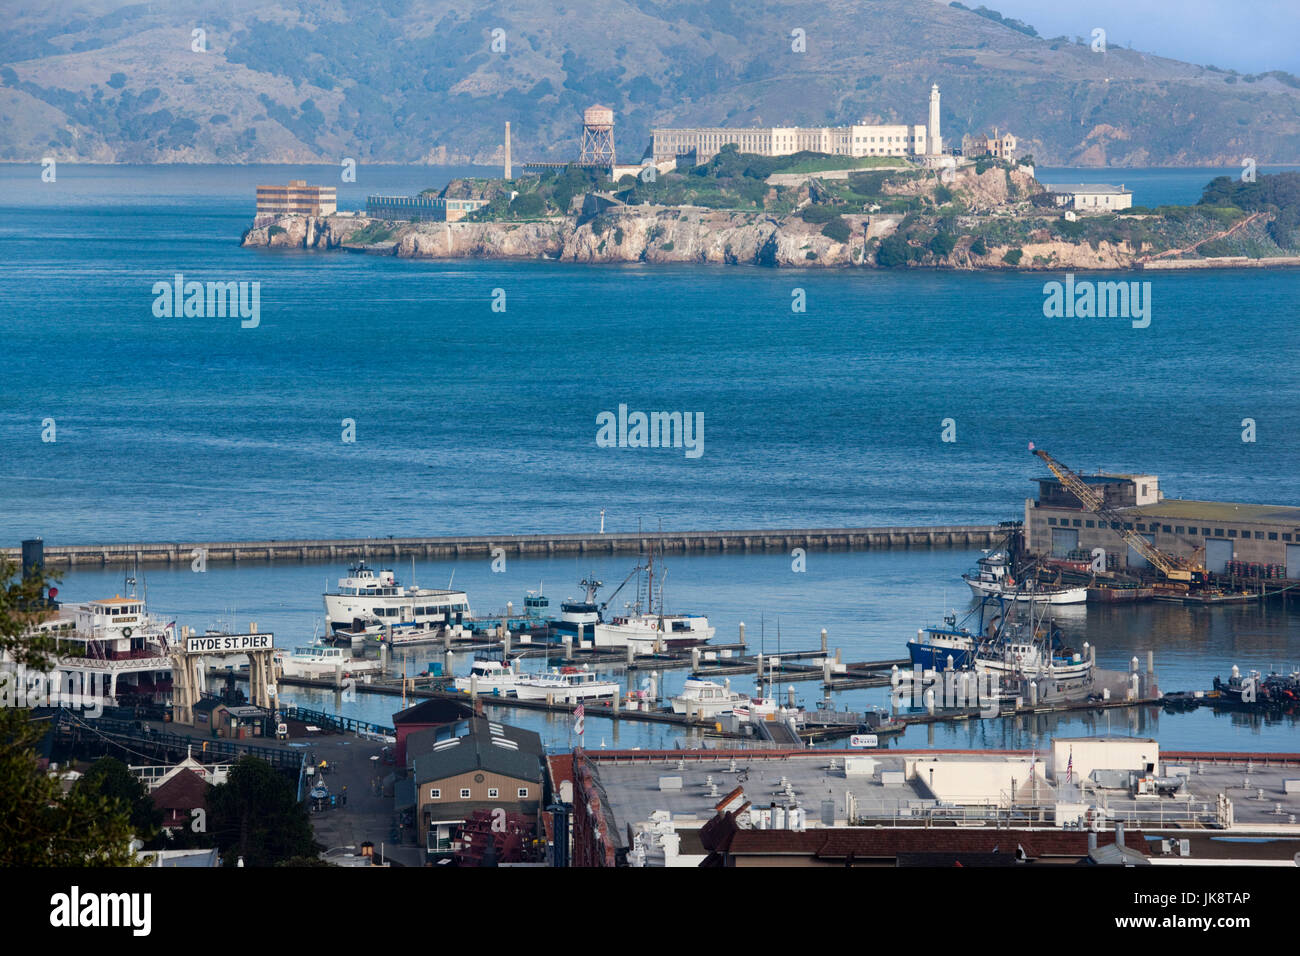 USA, California, San Francisco, Embarcadero, elevated view of Alcatraz Island from Hyde Street - Stock Image